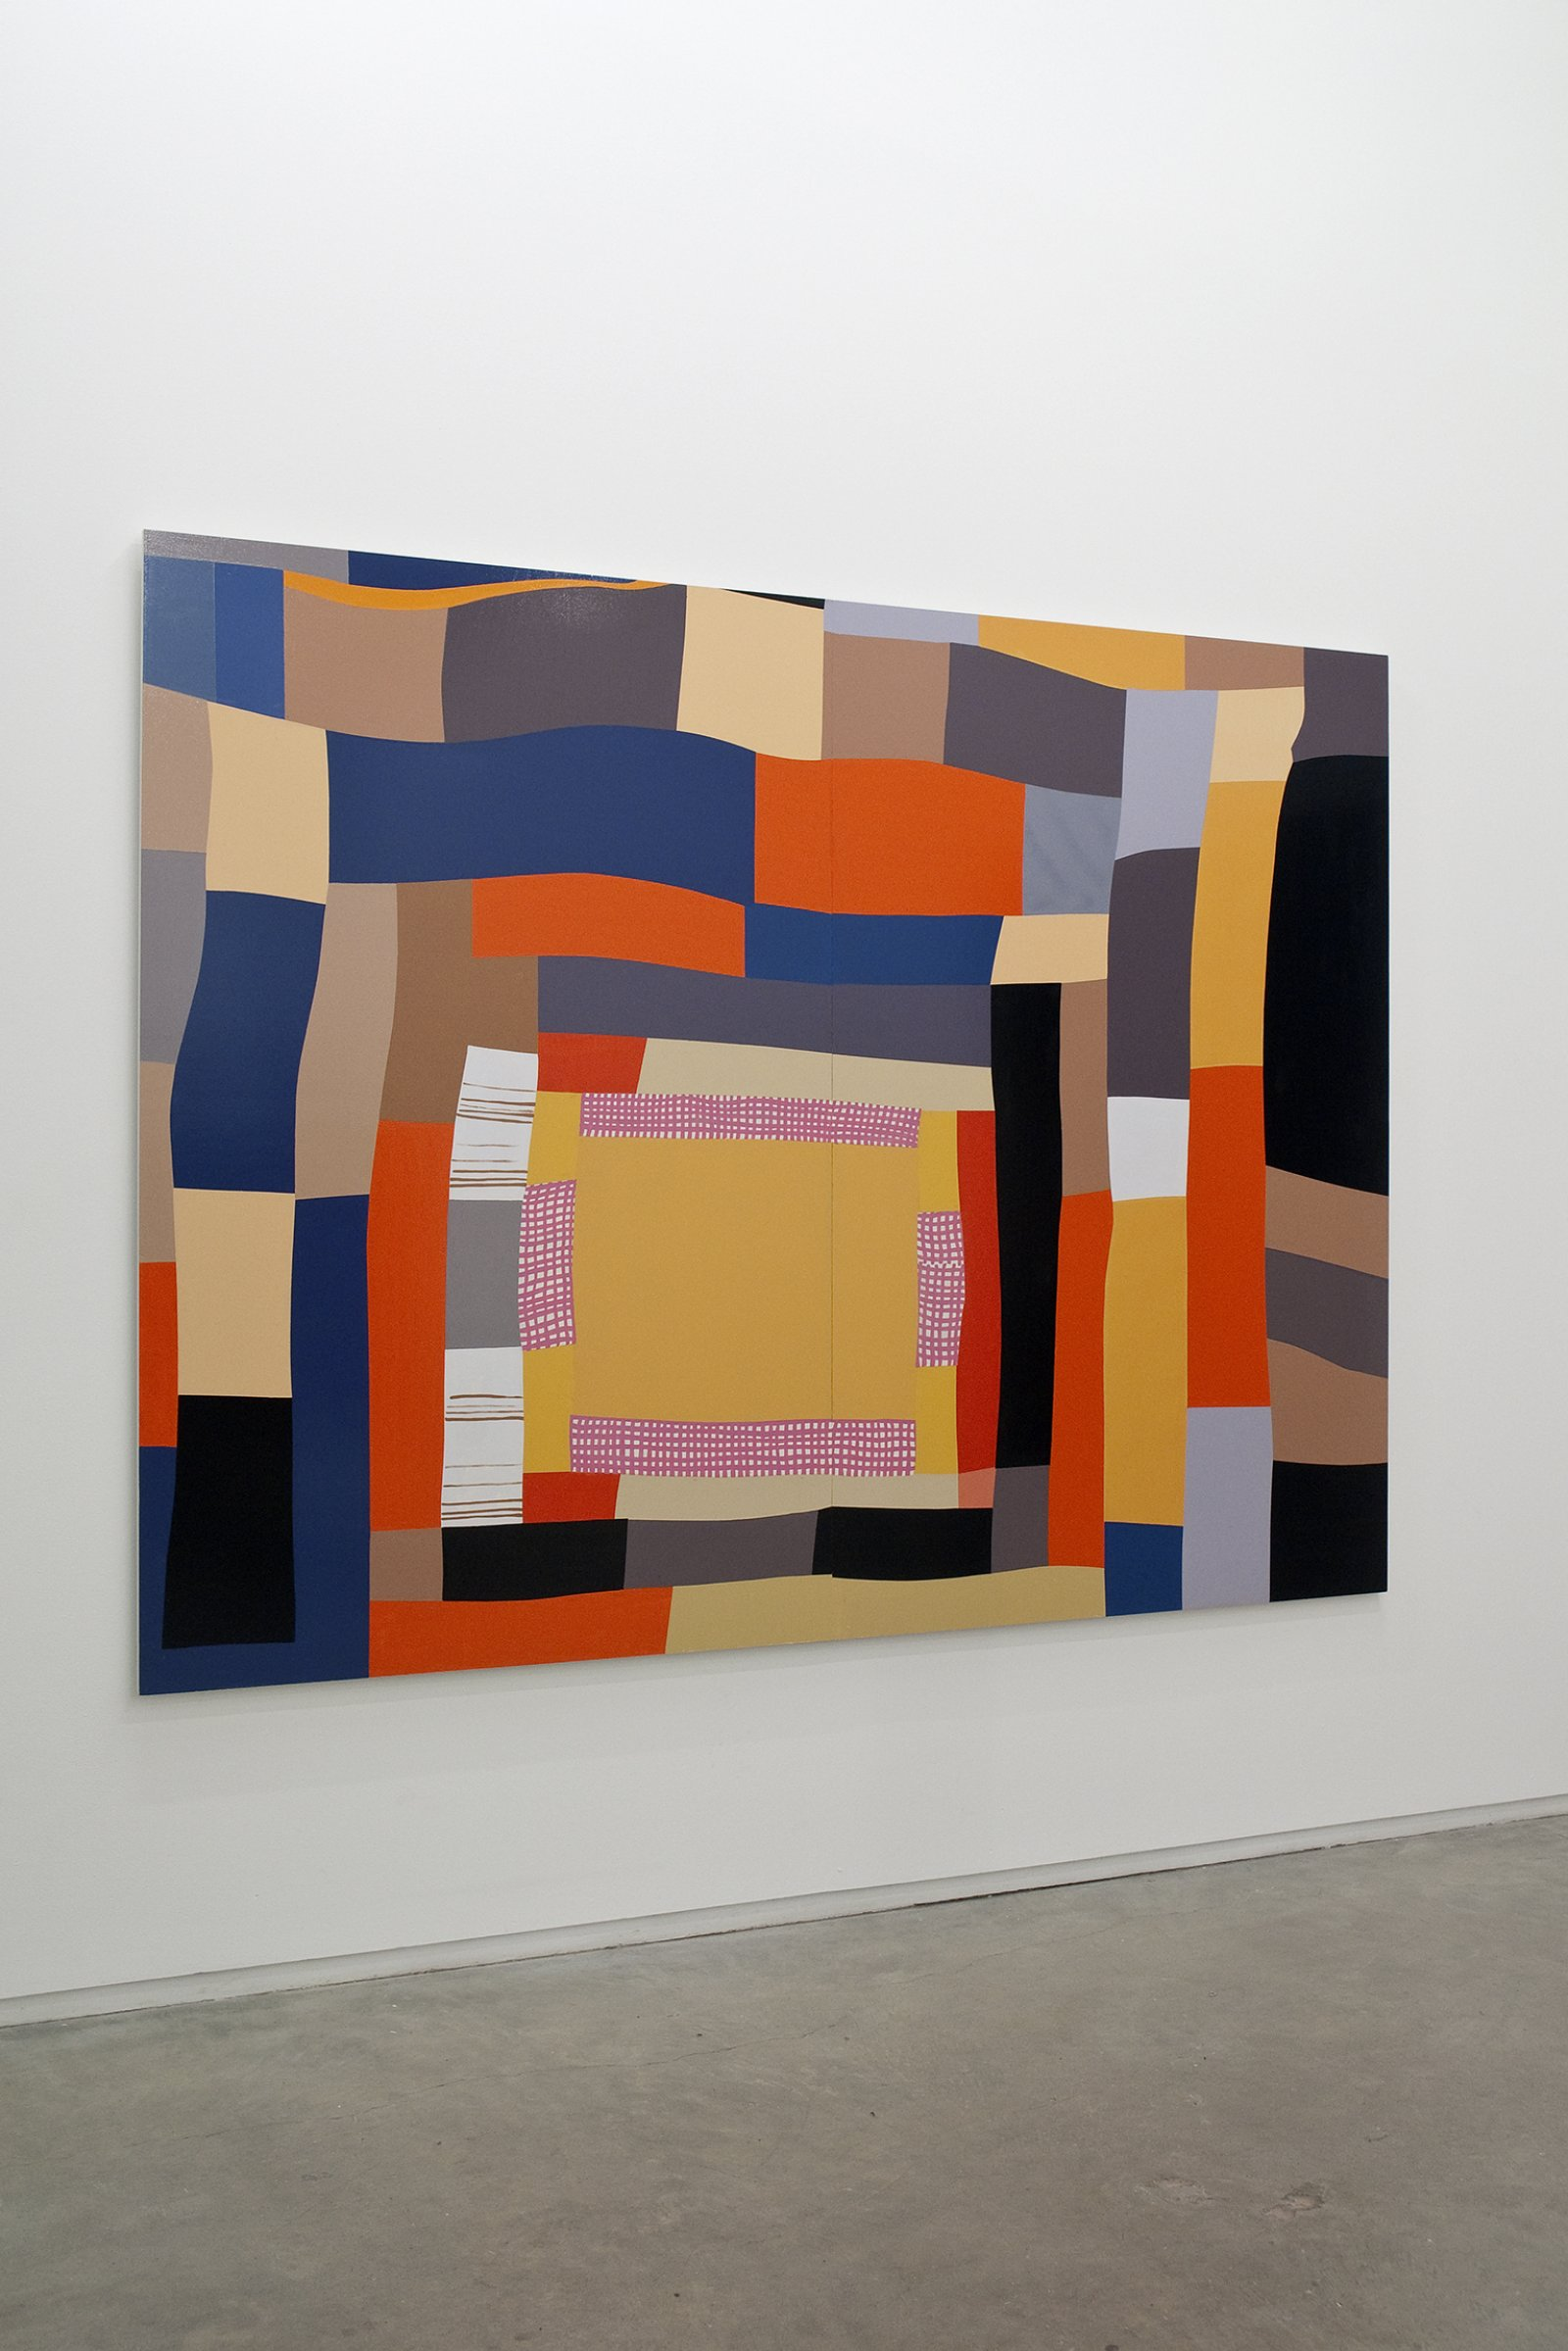 Myfanwy MacLeod, Ain't Nothing Ever Happened, 2009, enamel on wood, 72 x 96 in. (183 x 244 cm) by Myfanwy MacLeod